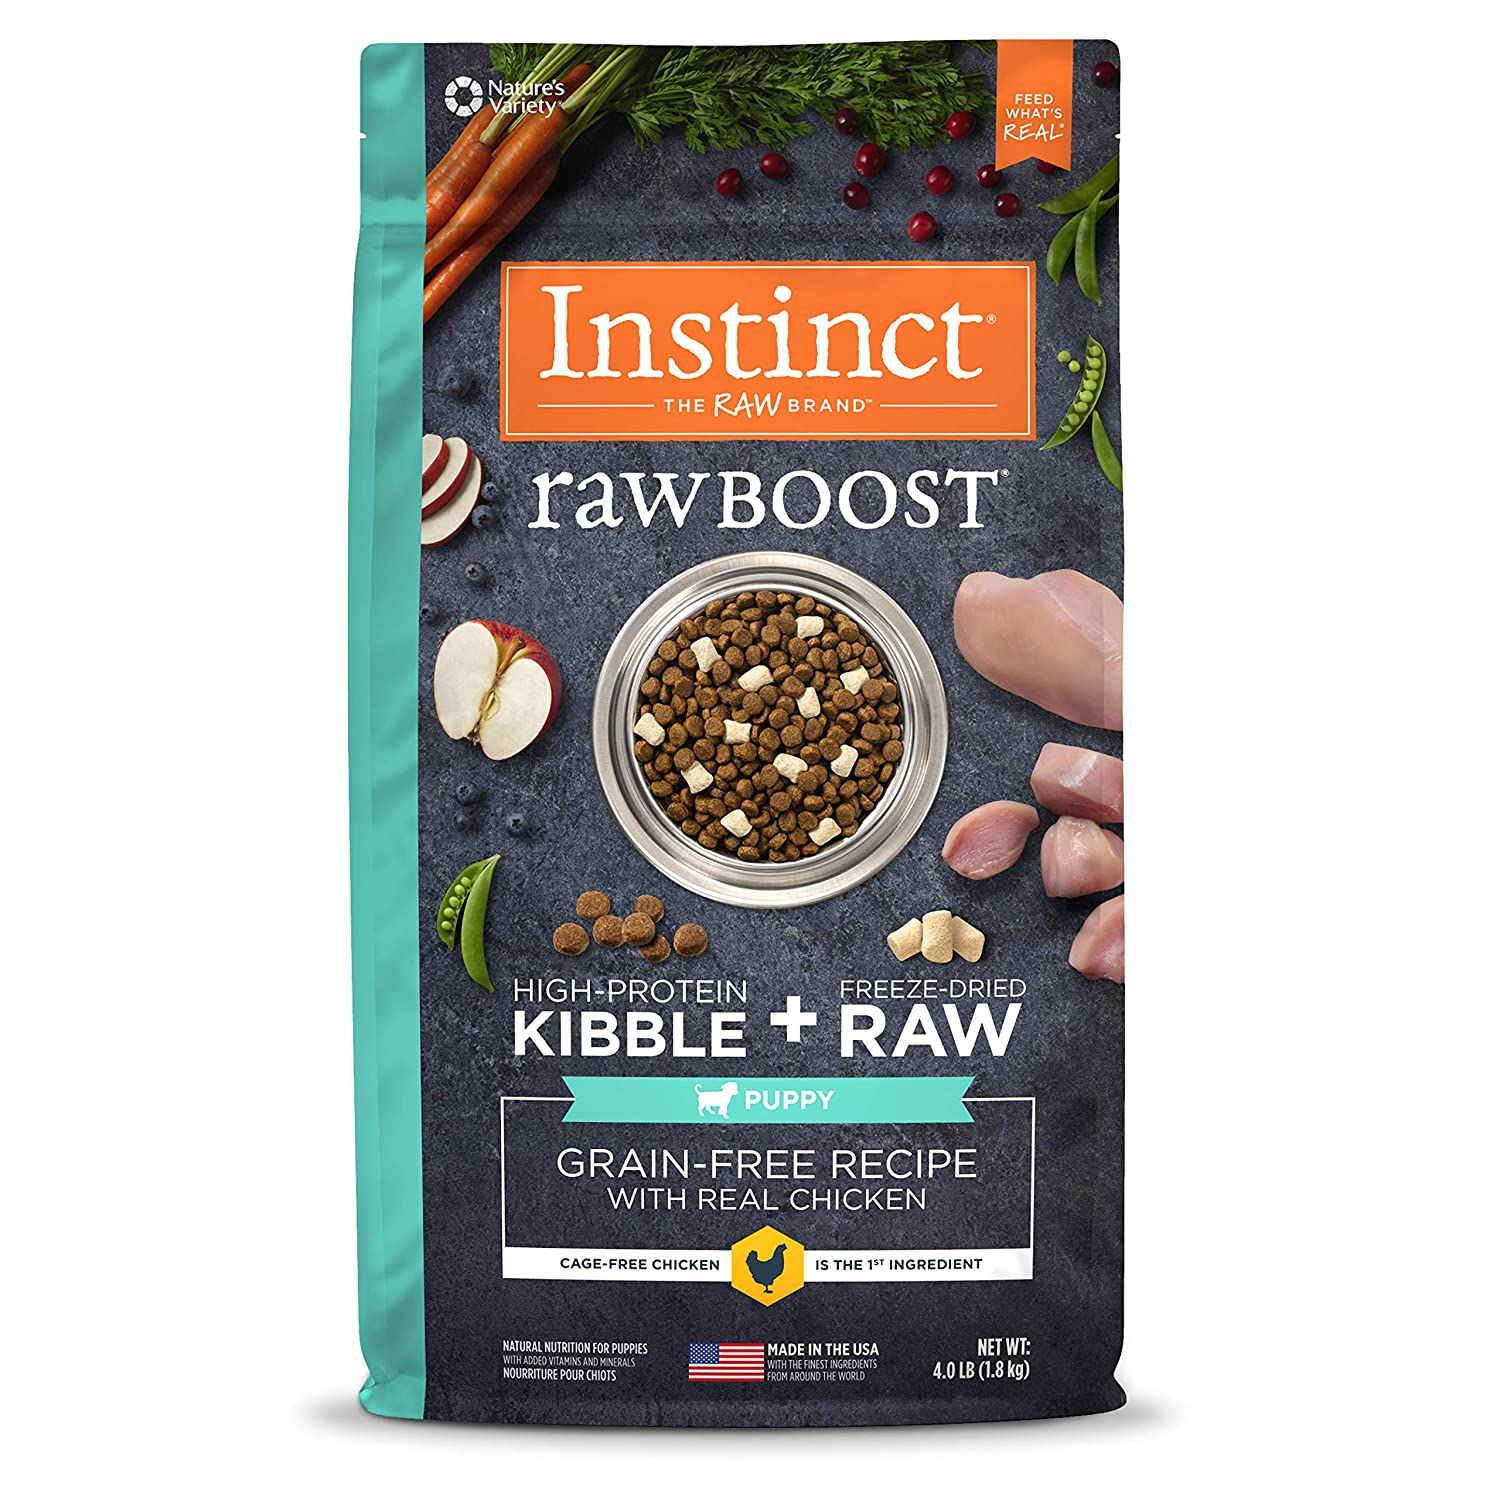 2.Instinct by Nature's Variety Raw Boost Puppy Grain-Free Recipe with Real Chicken